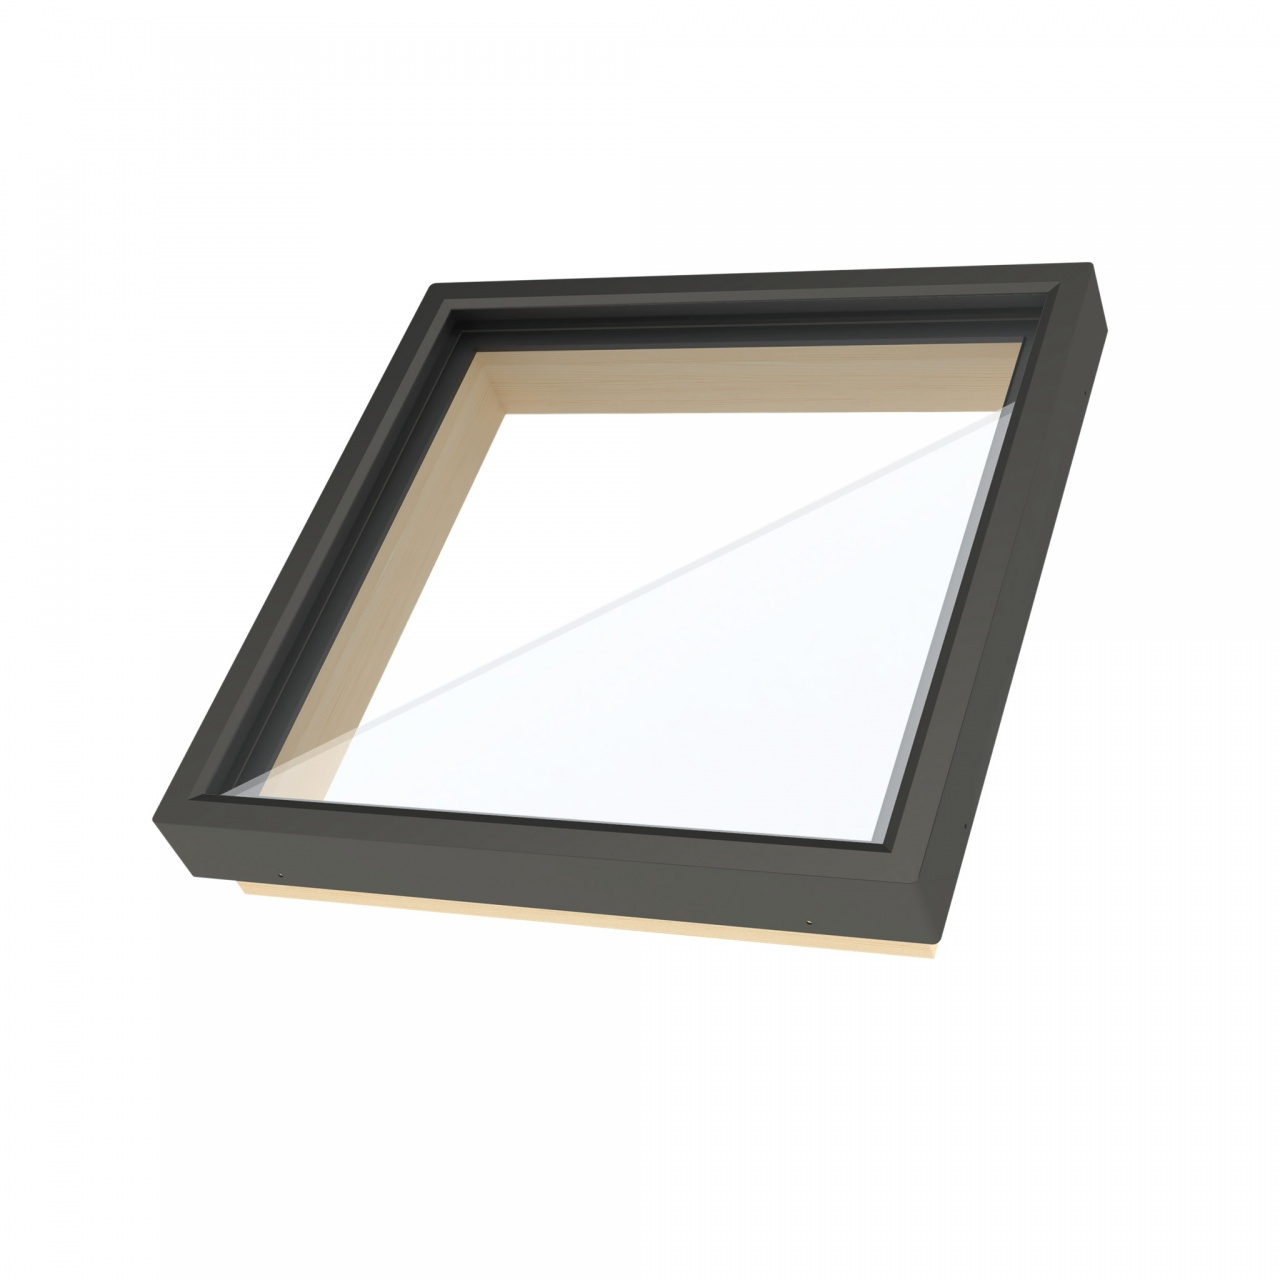 Curb mounted fixed skylight FXR